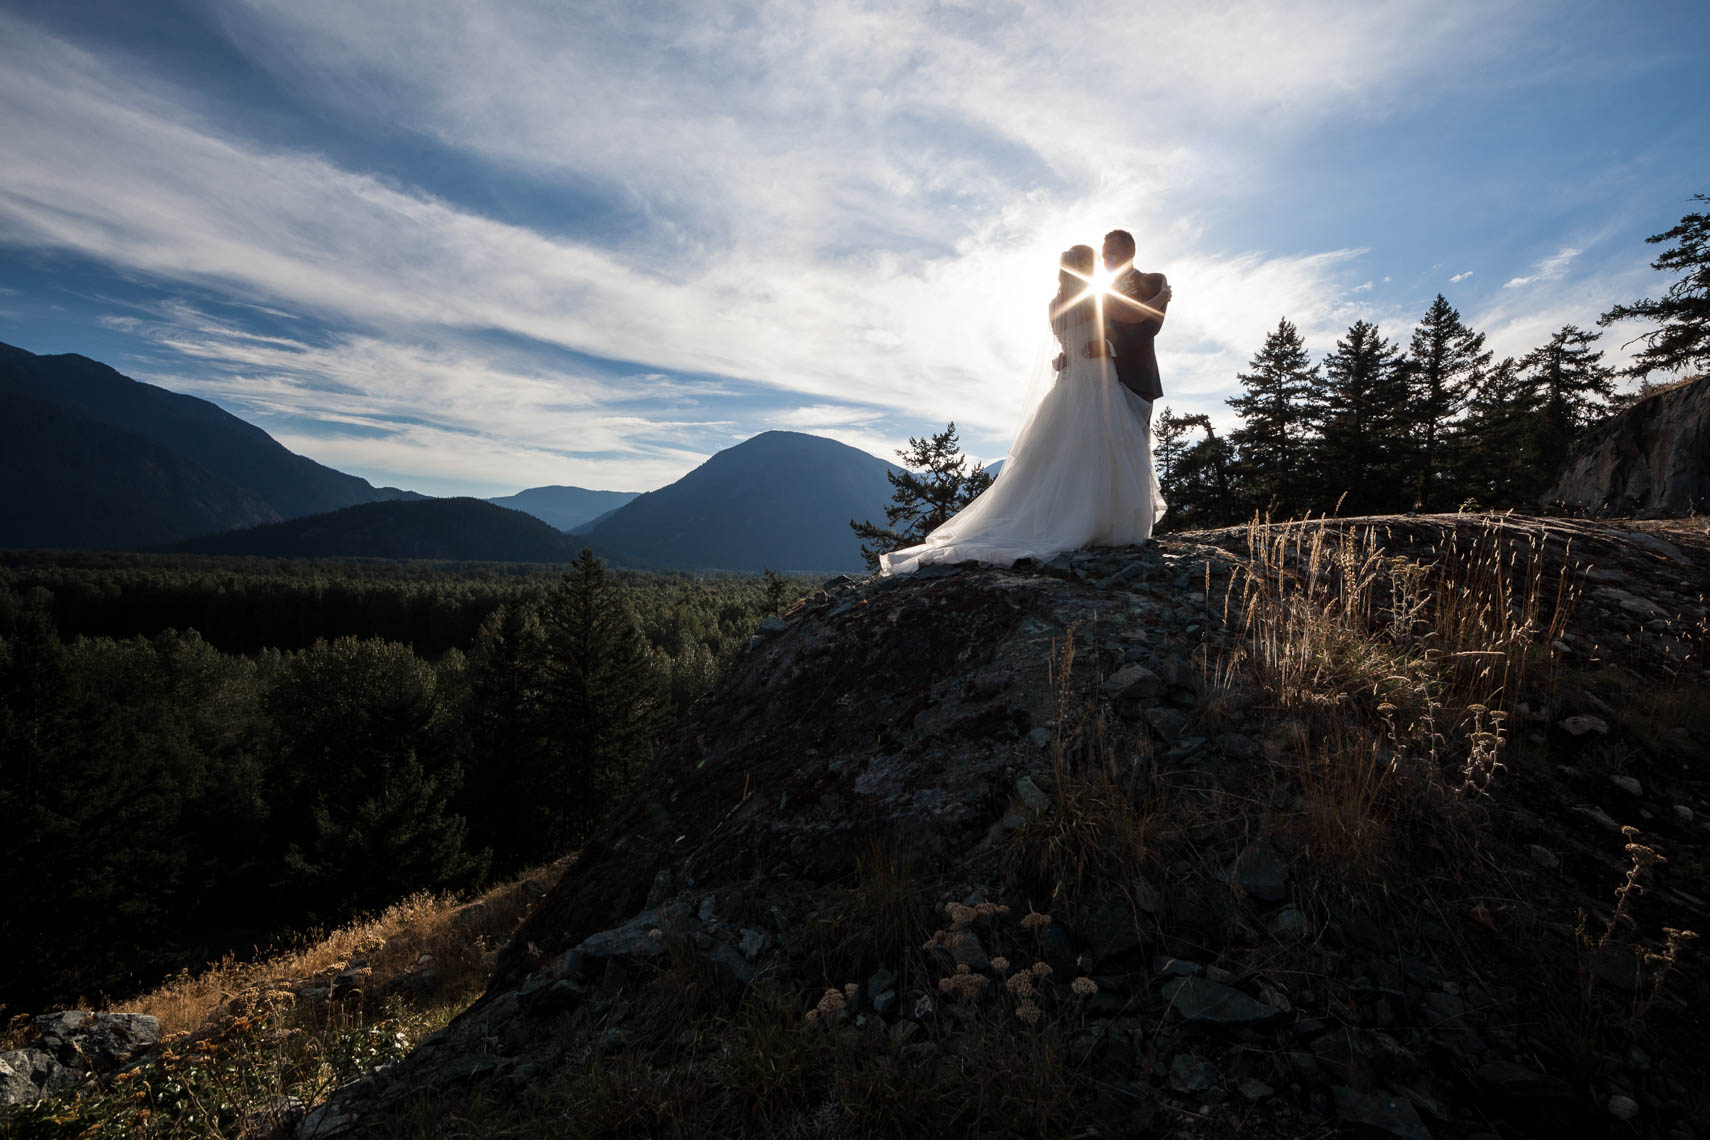 Sun flare silhouette of wedding couple in the mountains of Whistler BC